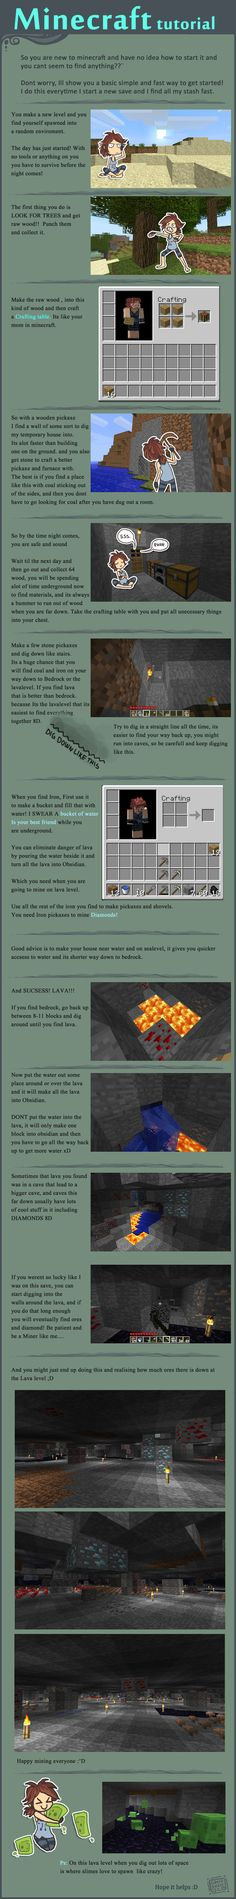 Minecraft: Tutorial for Beginnners. So if I can ever convince KT or my mom to play....